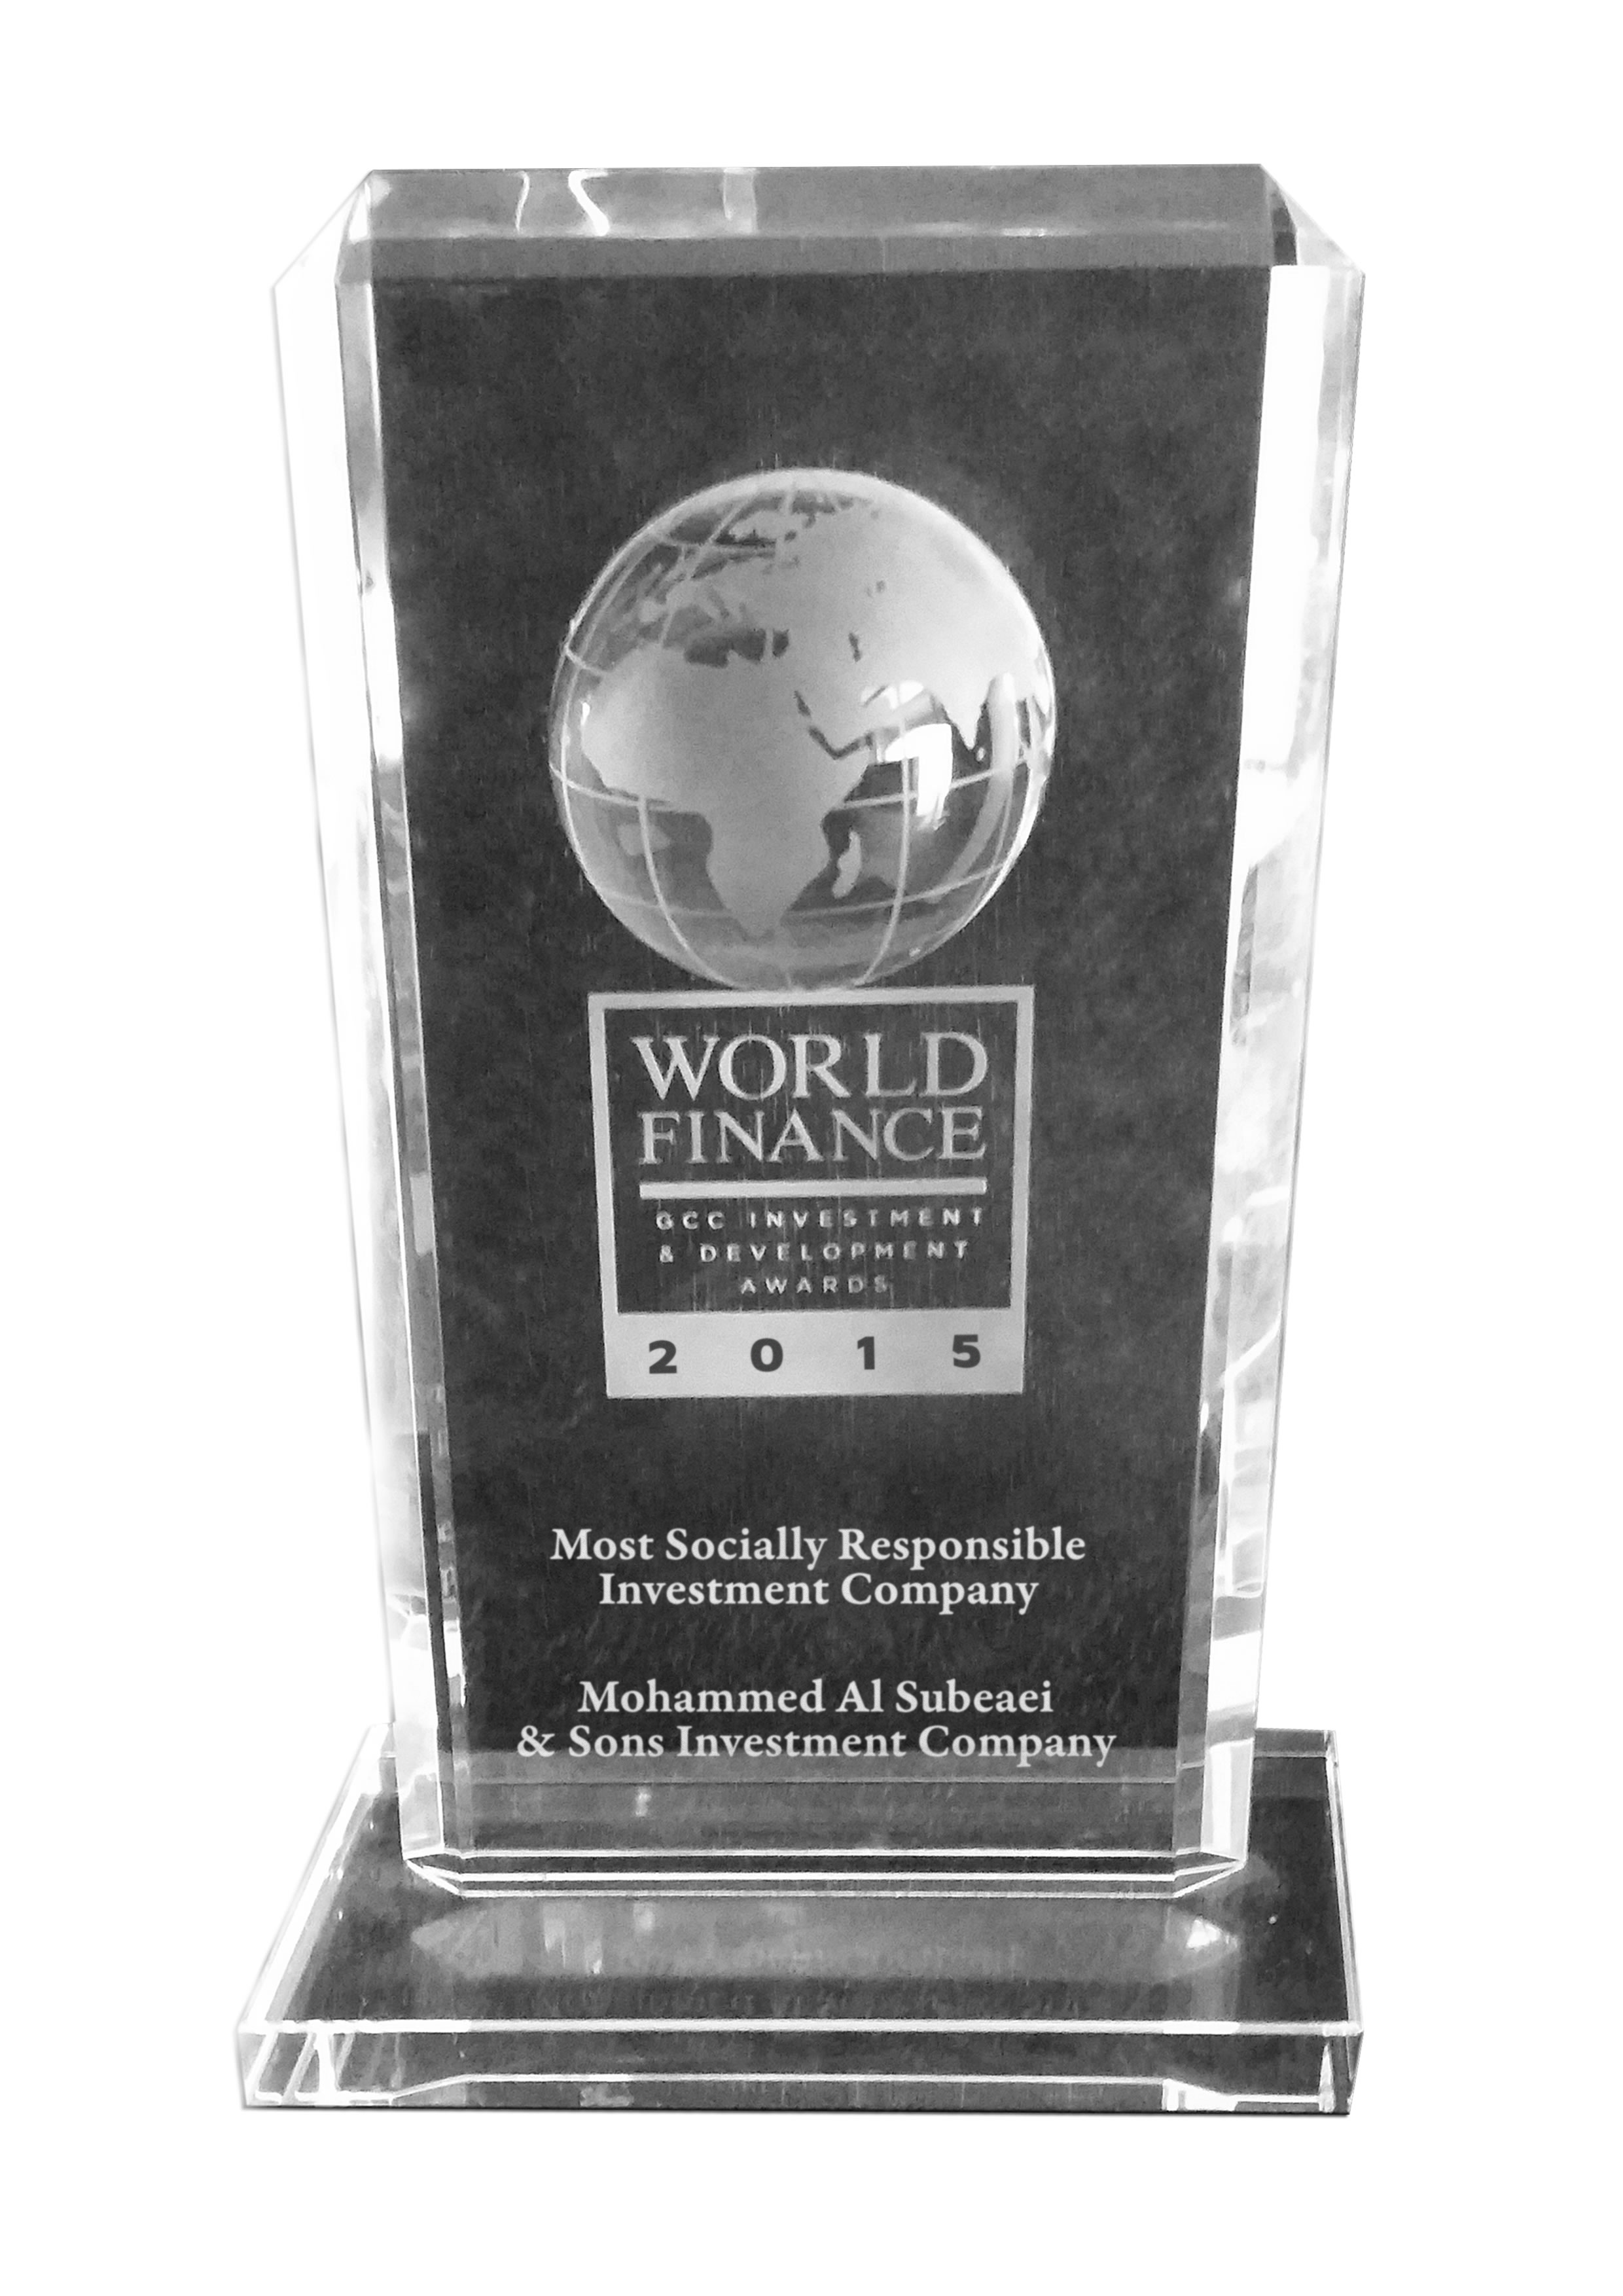 Most Socially Responsible Investment Company 2015